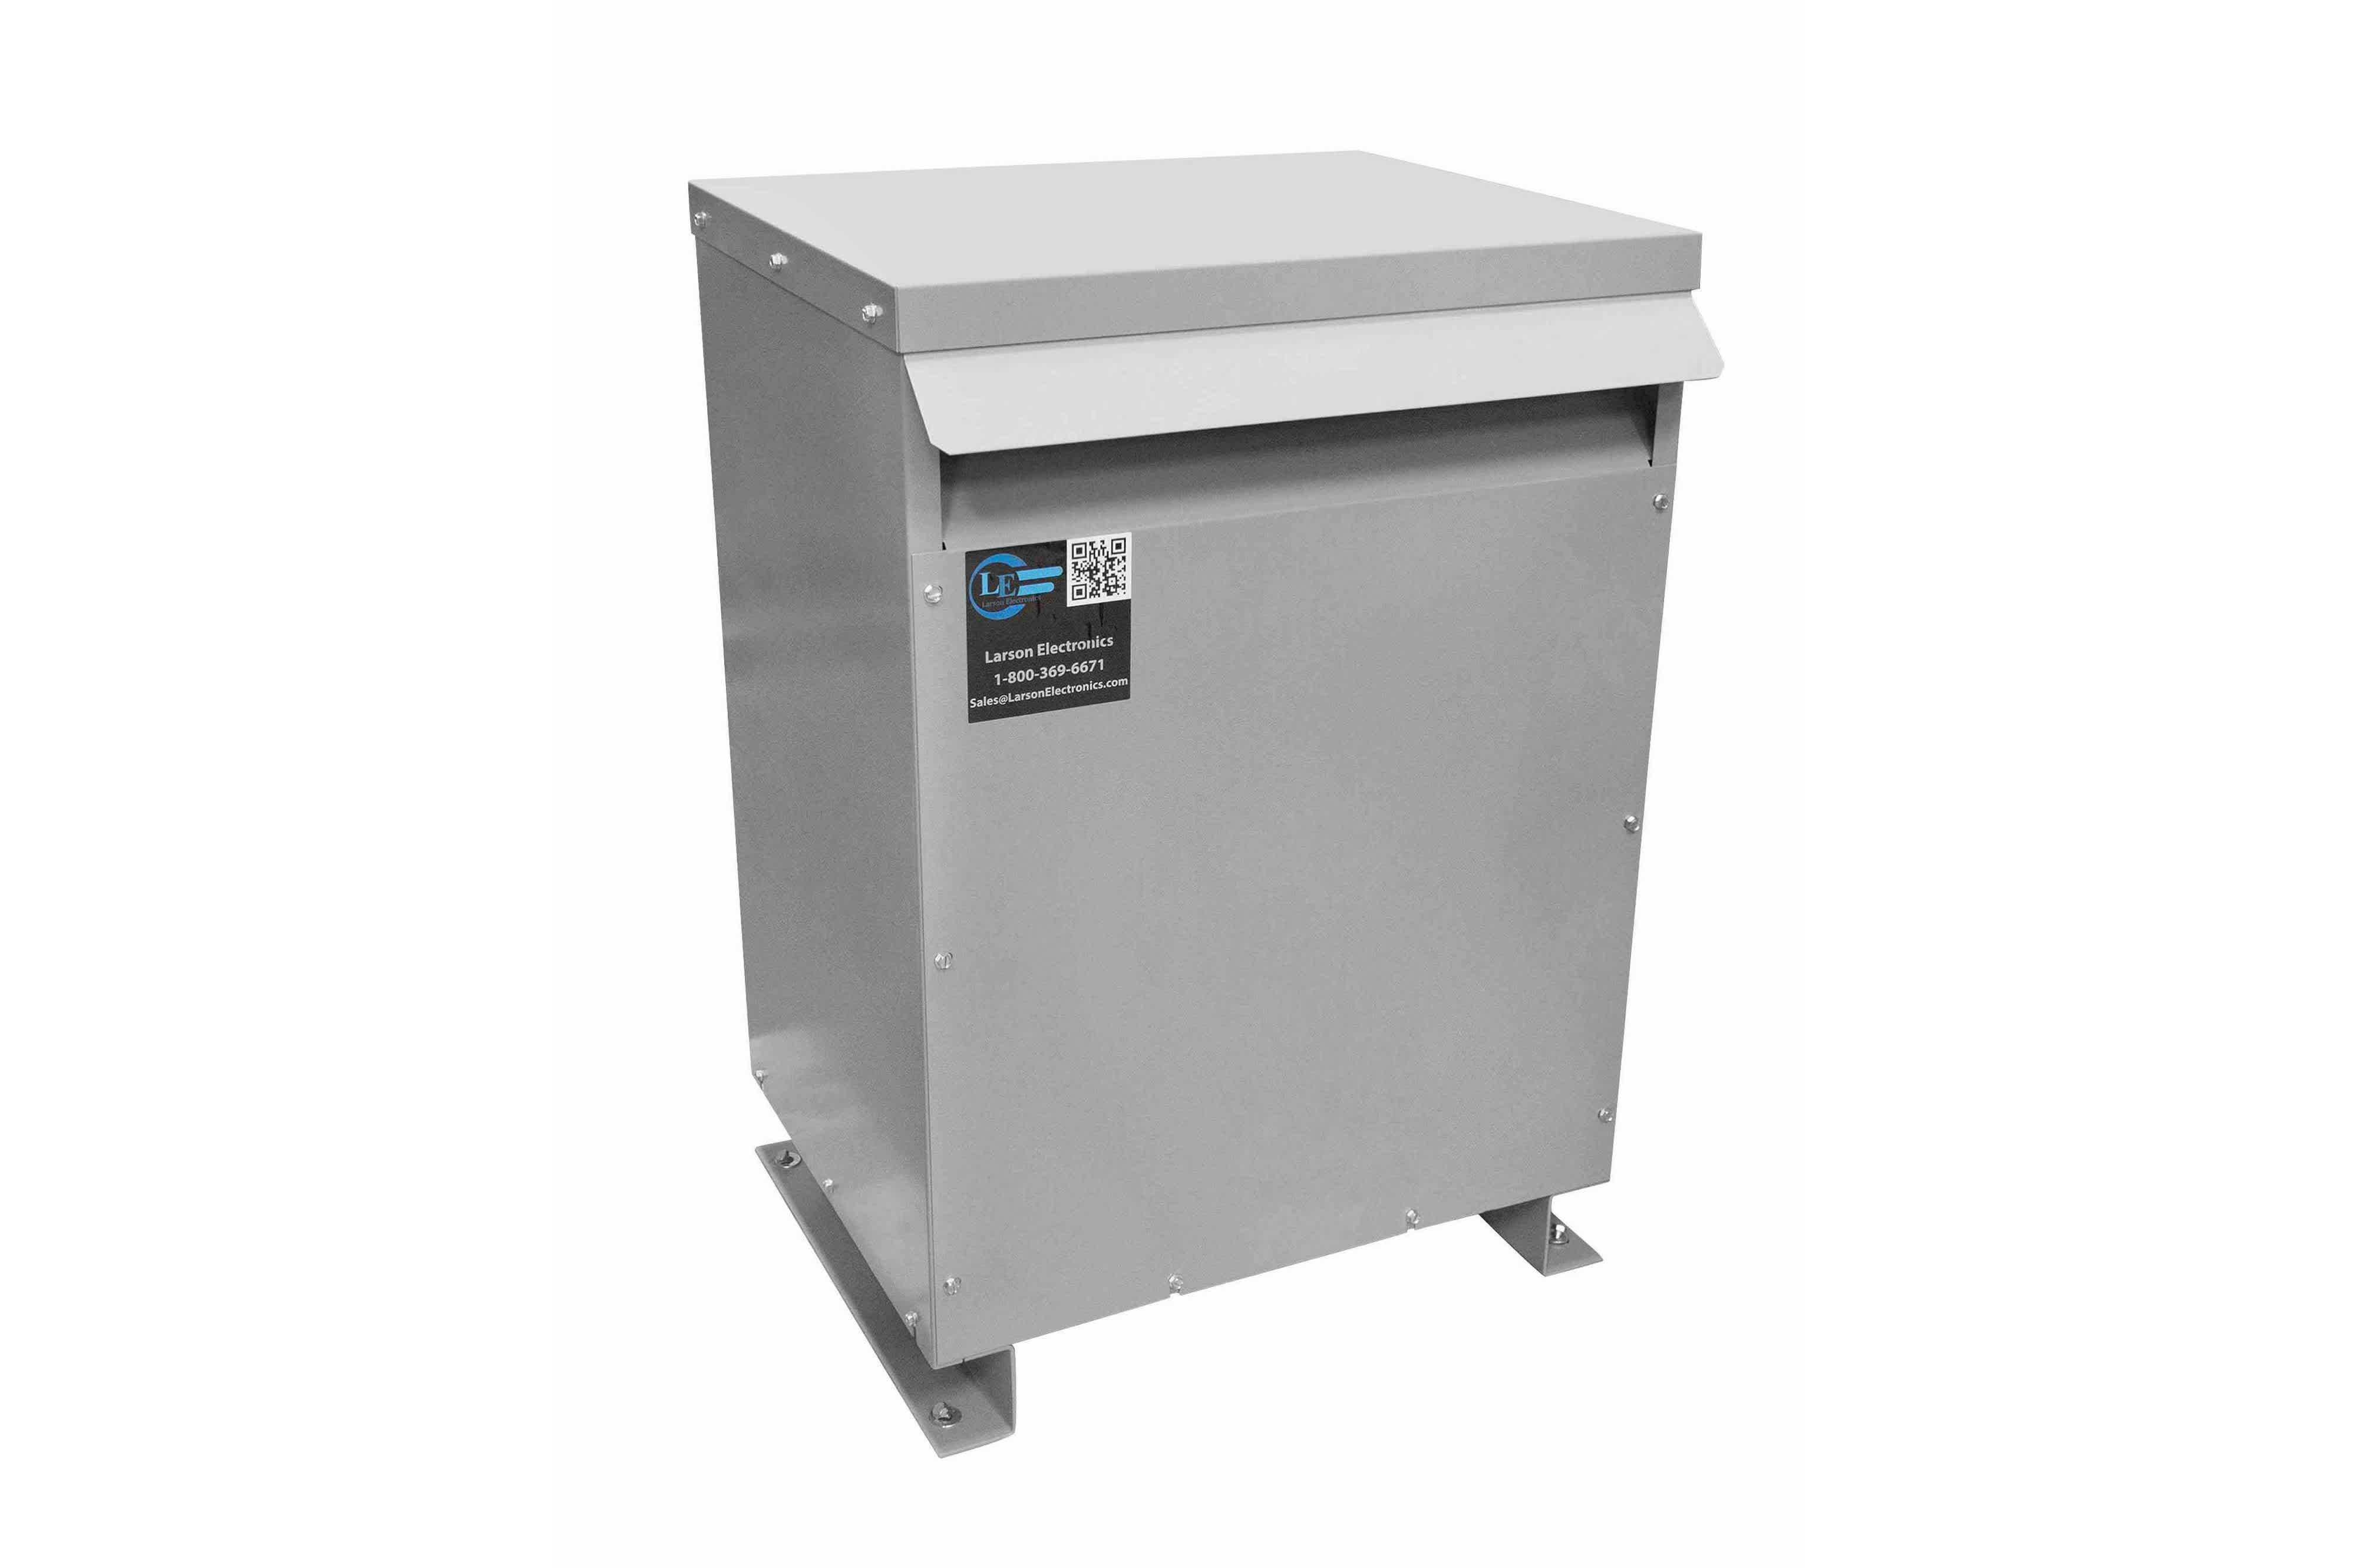 112.5 kVA 3PH Isolation Transformer, 460V Delta Primary, 380V Delta Secondary, N3R, Ventilated, 60 Hz